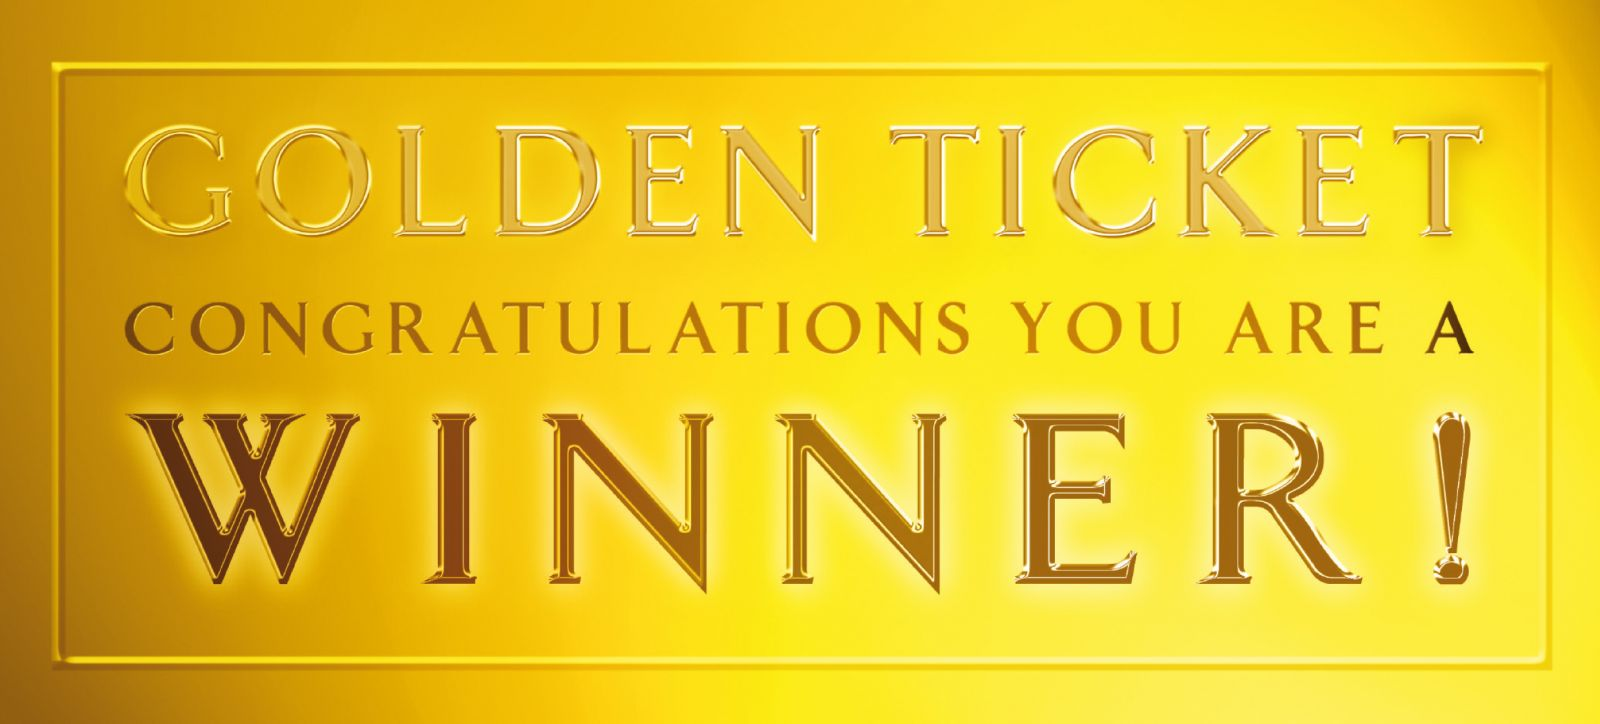 Gold Ticket Logo Pictures to Pin PinsDaddy – Winning Ticket Template